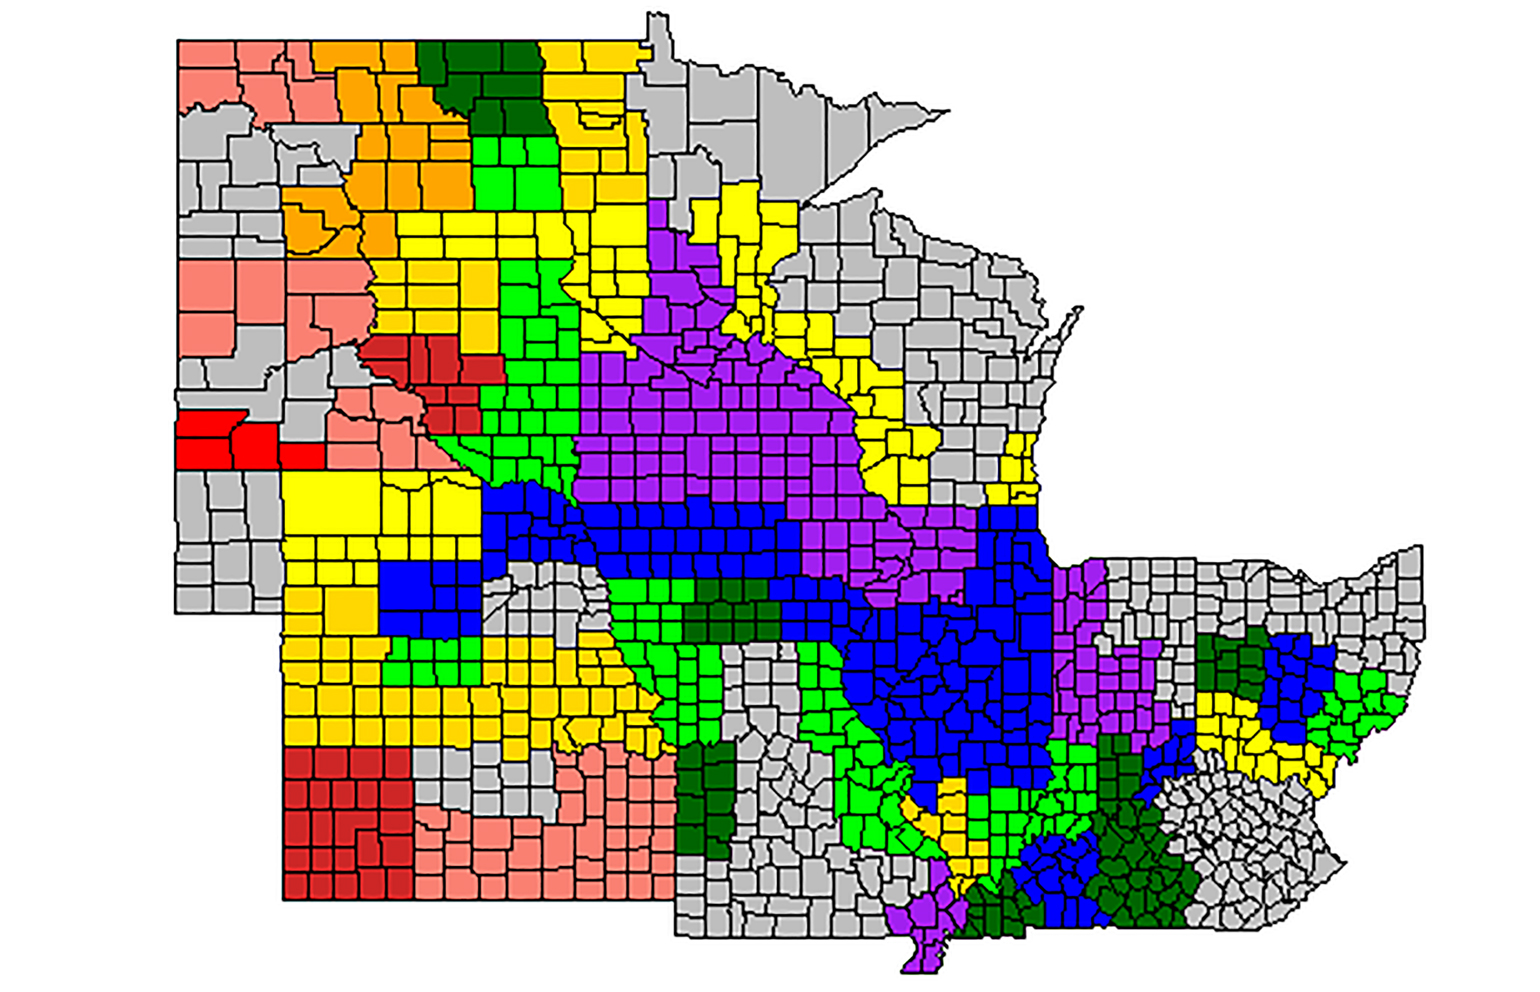 colored map of U.S. Midwest